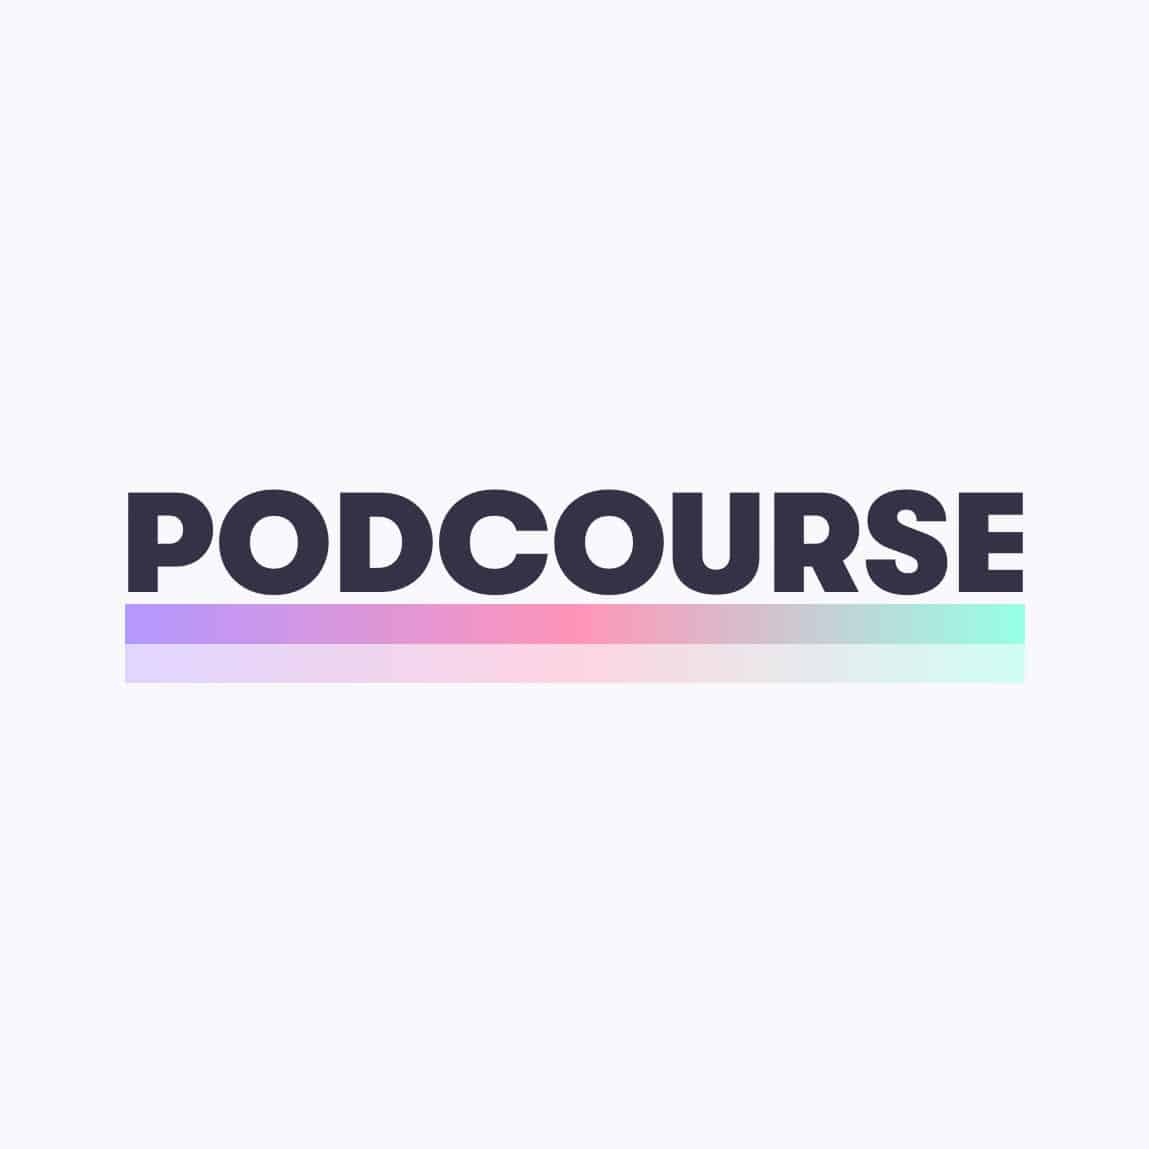 Podcourse: An Uncomplicated Podcasting Course